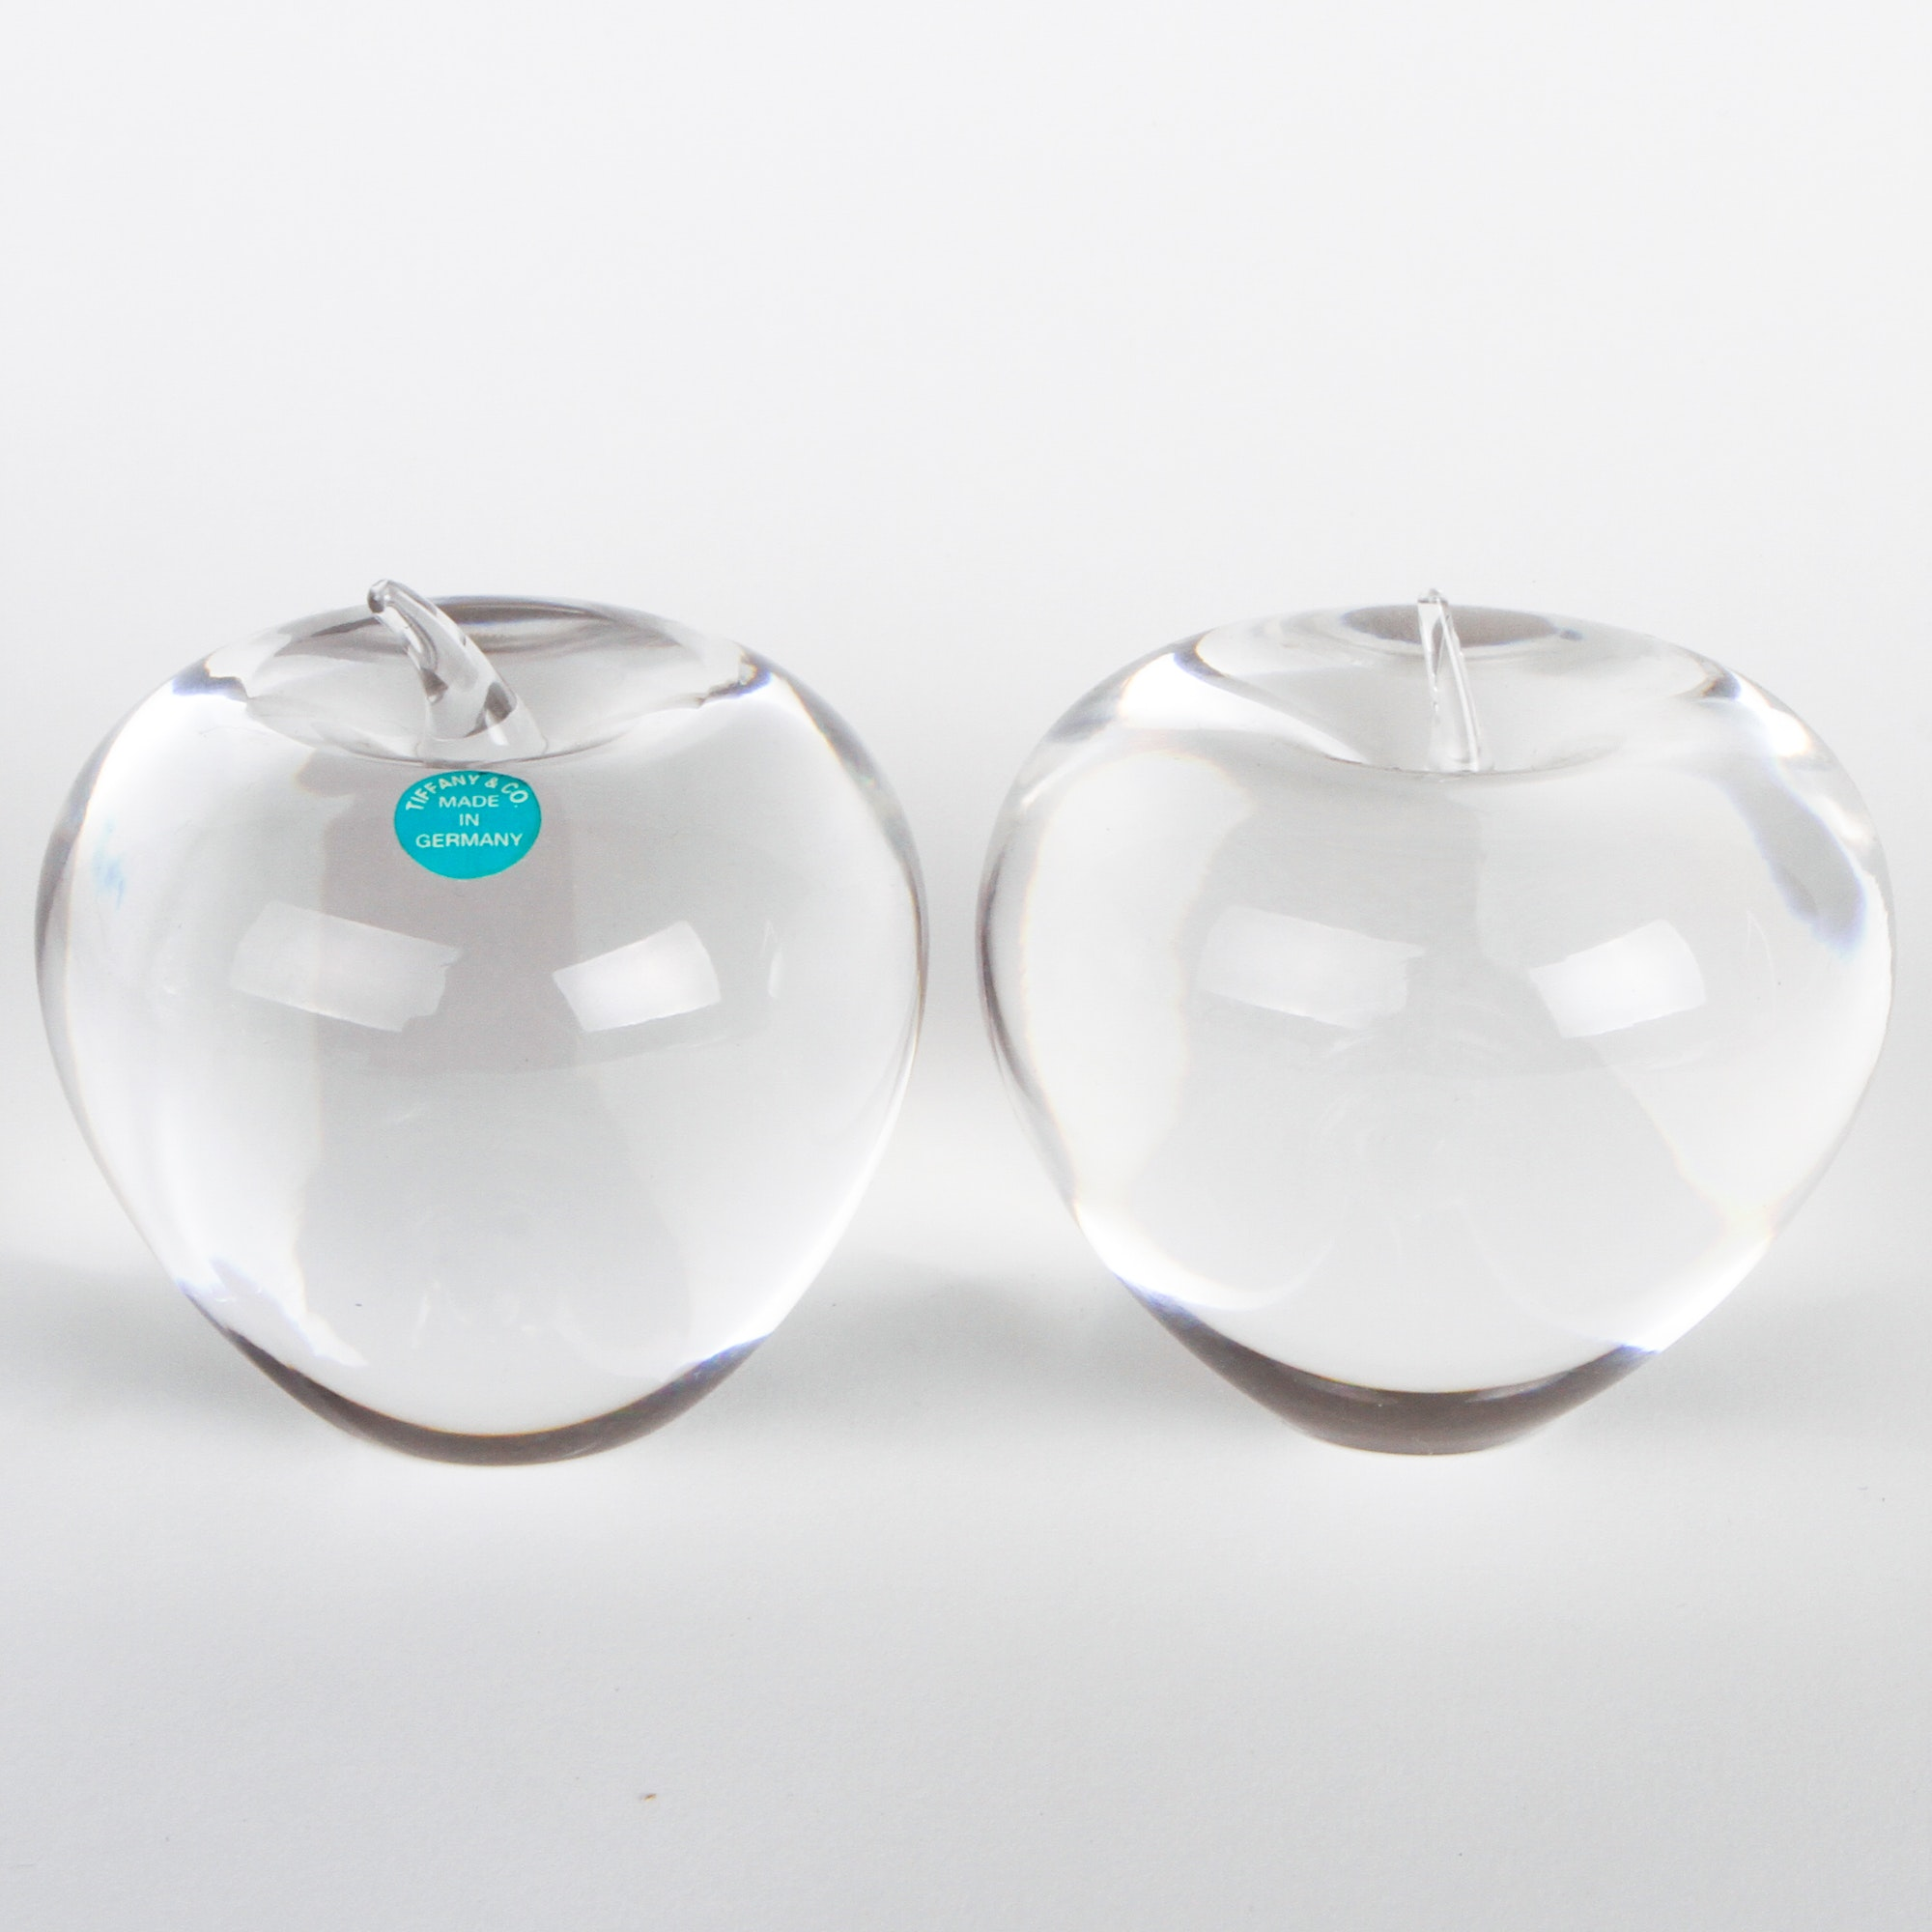 Pair of Tiffany and Co. Crystal Apples